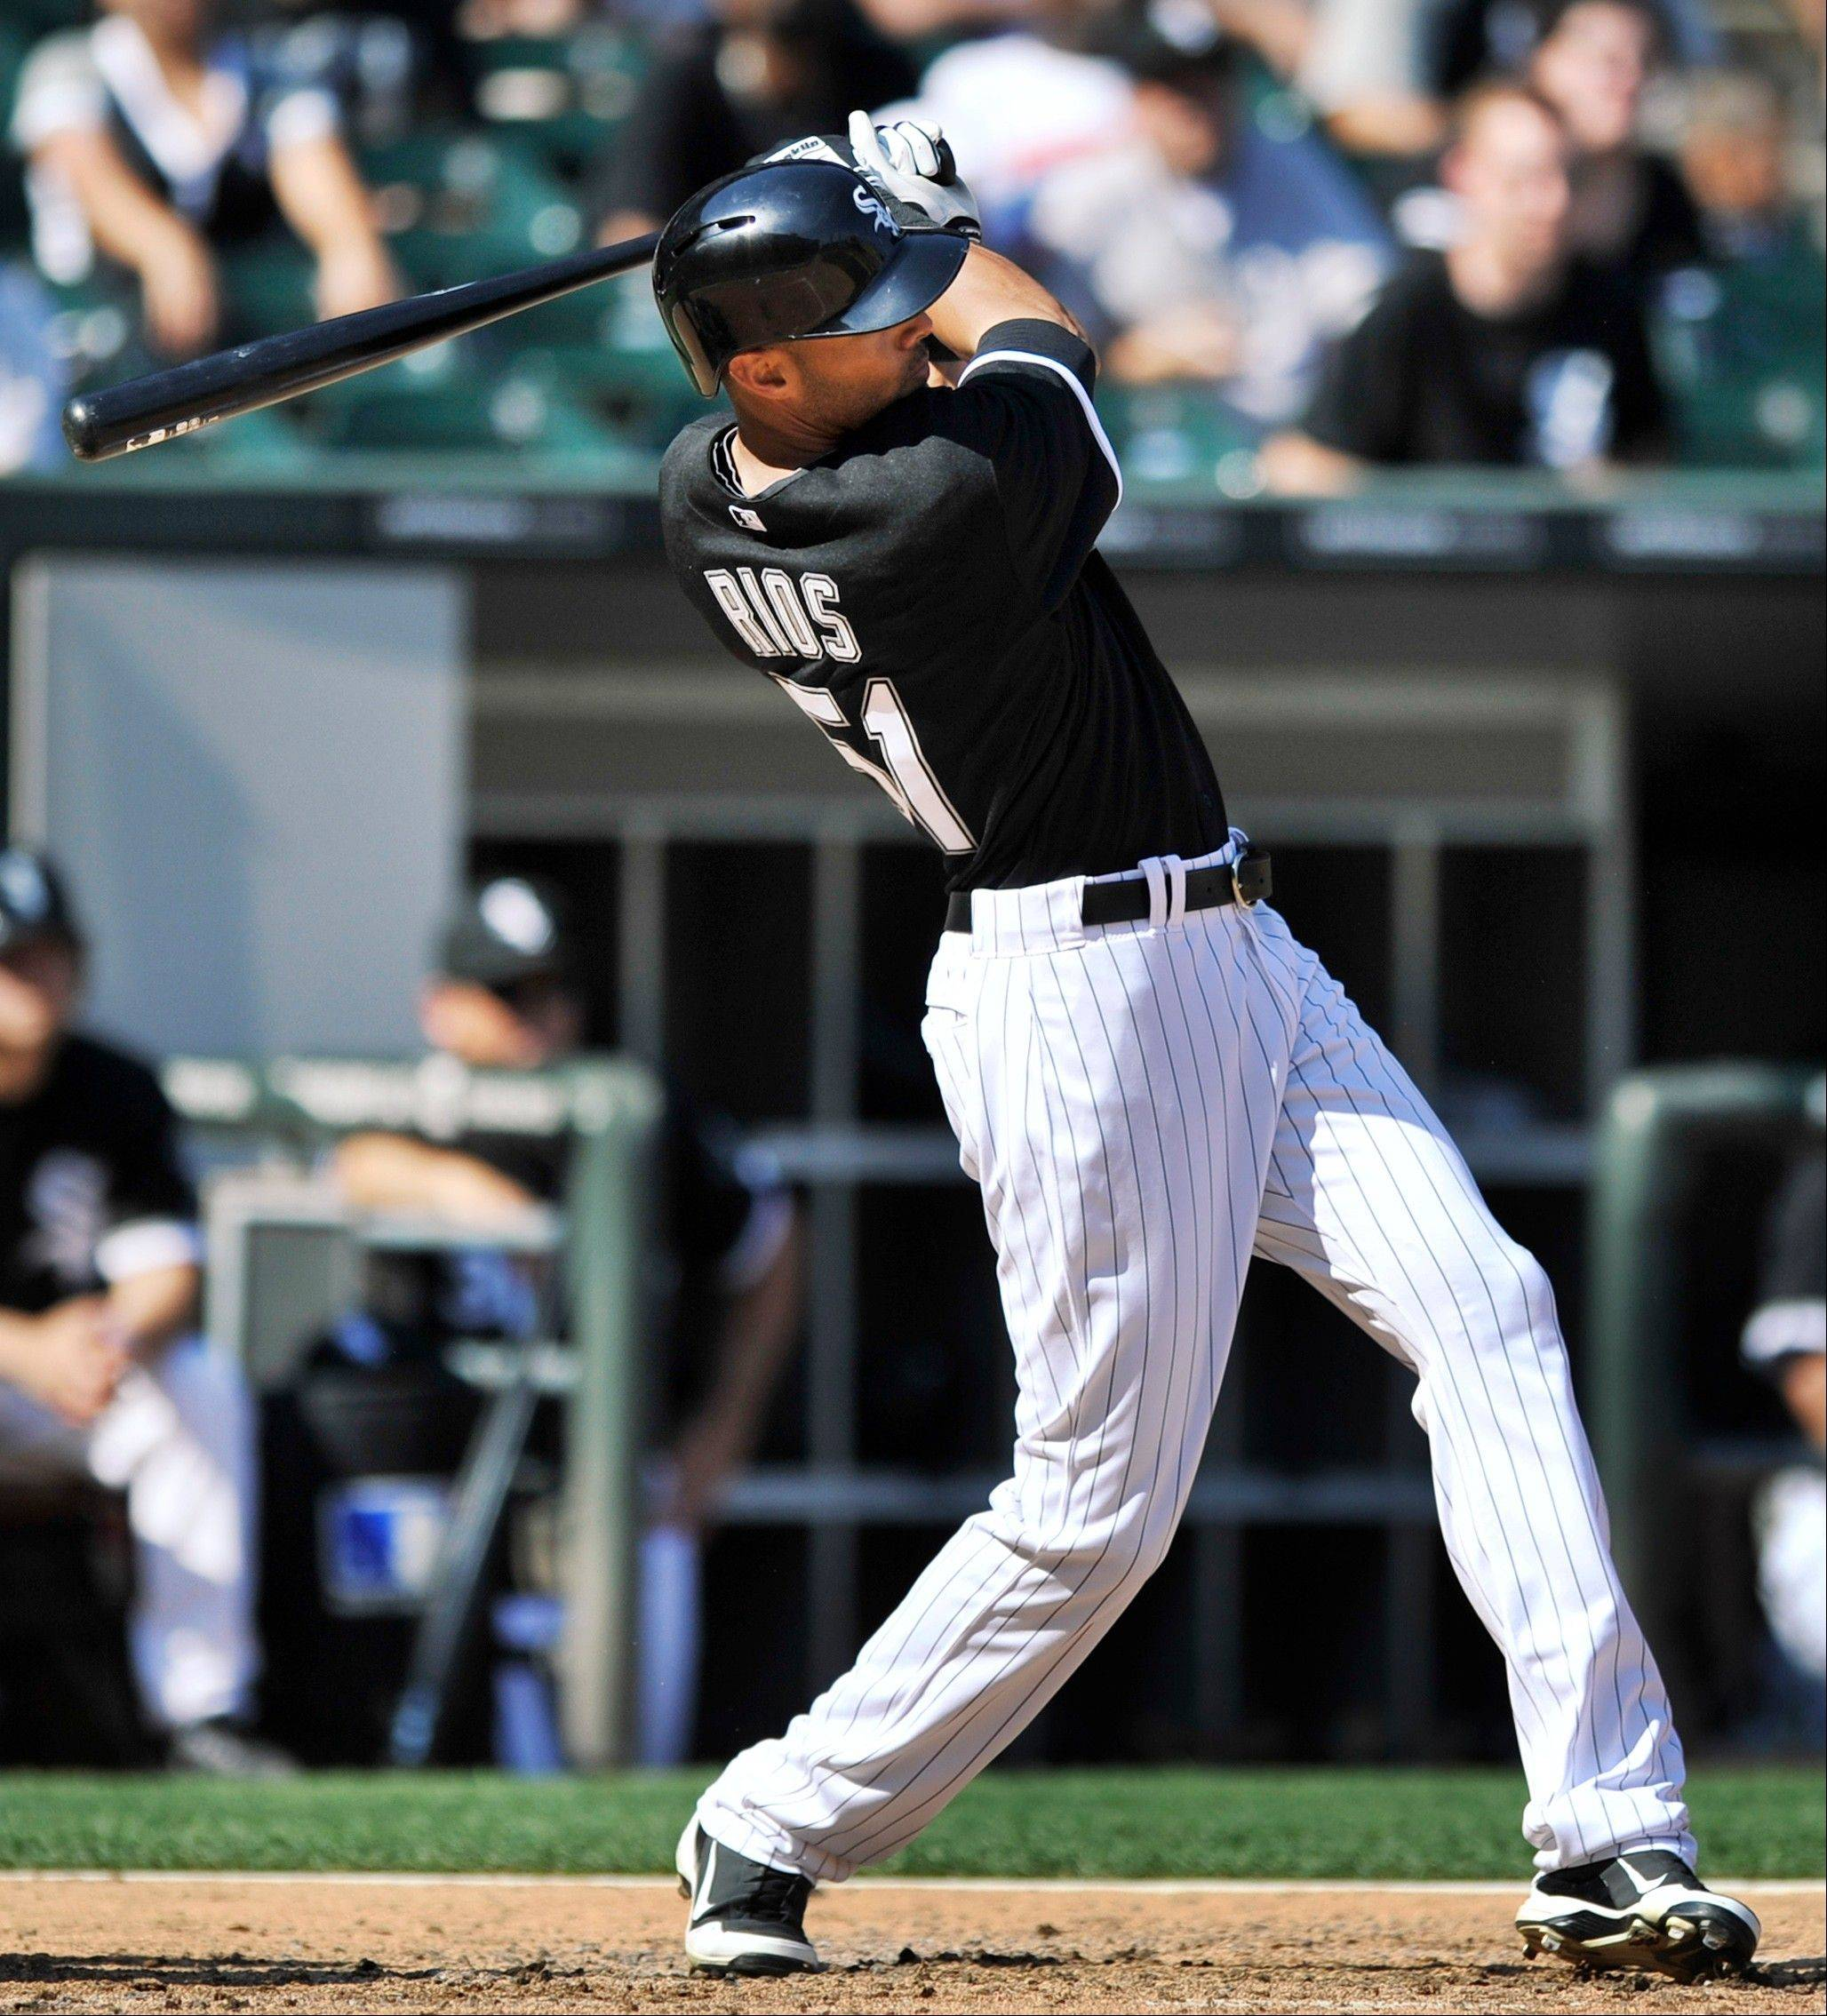 The White Sox' Alex Rios watches his grand slam sail to the seats in the third inning Saturday against the Braves.